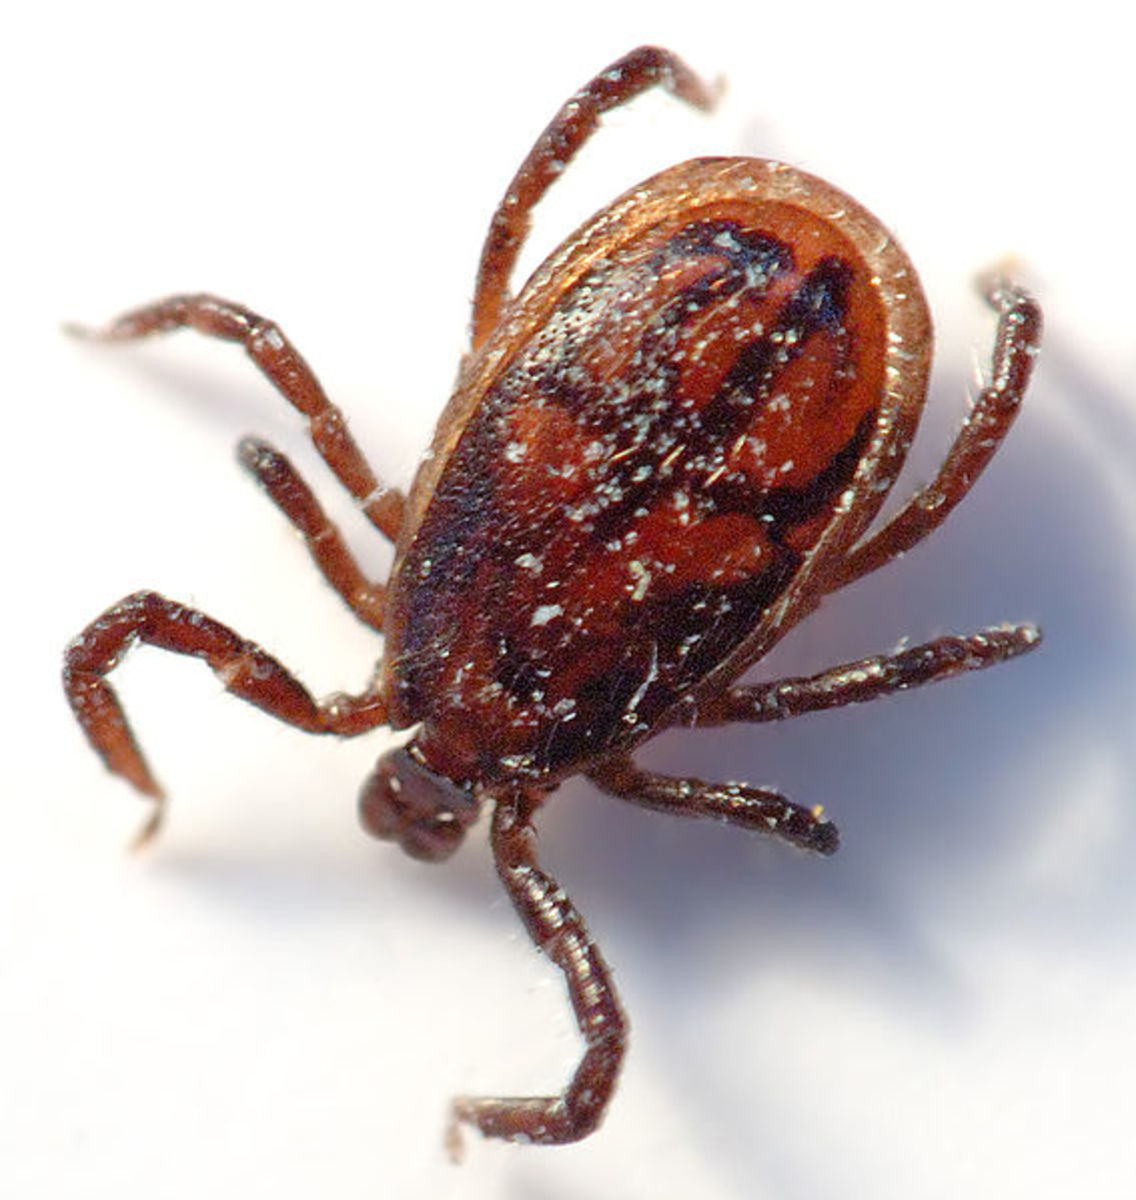 Dog Tick Shampoo For Human Use May Sound Weird But It Is An Effective Form Of Tick Control.